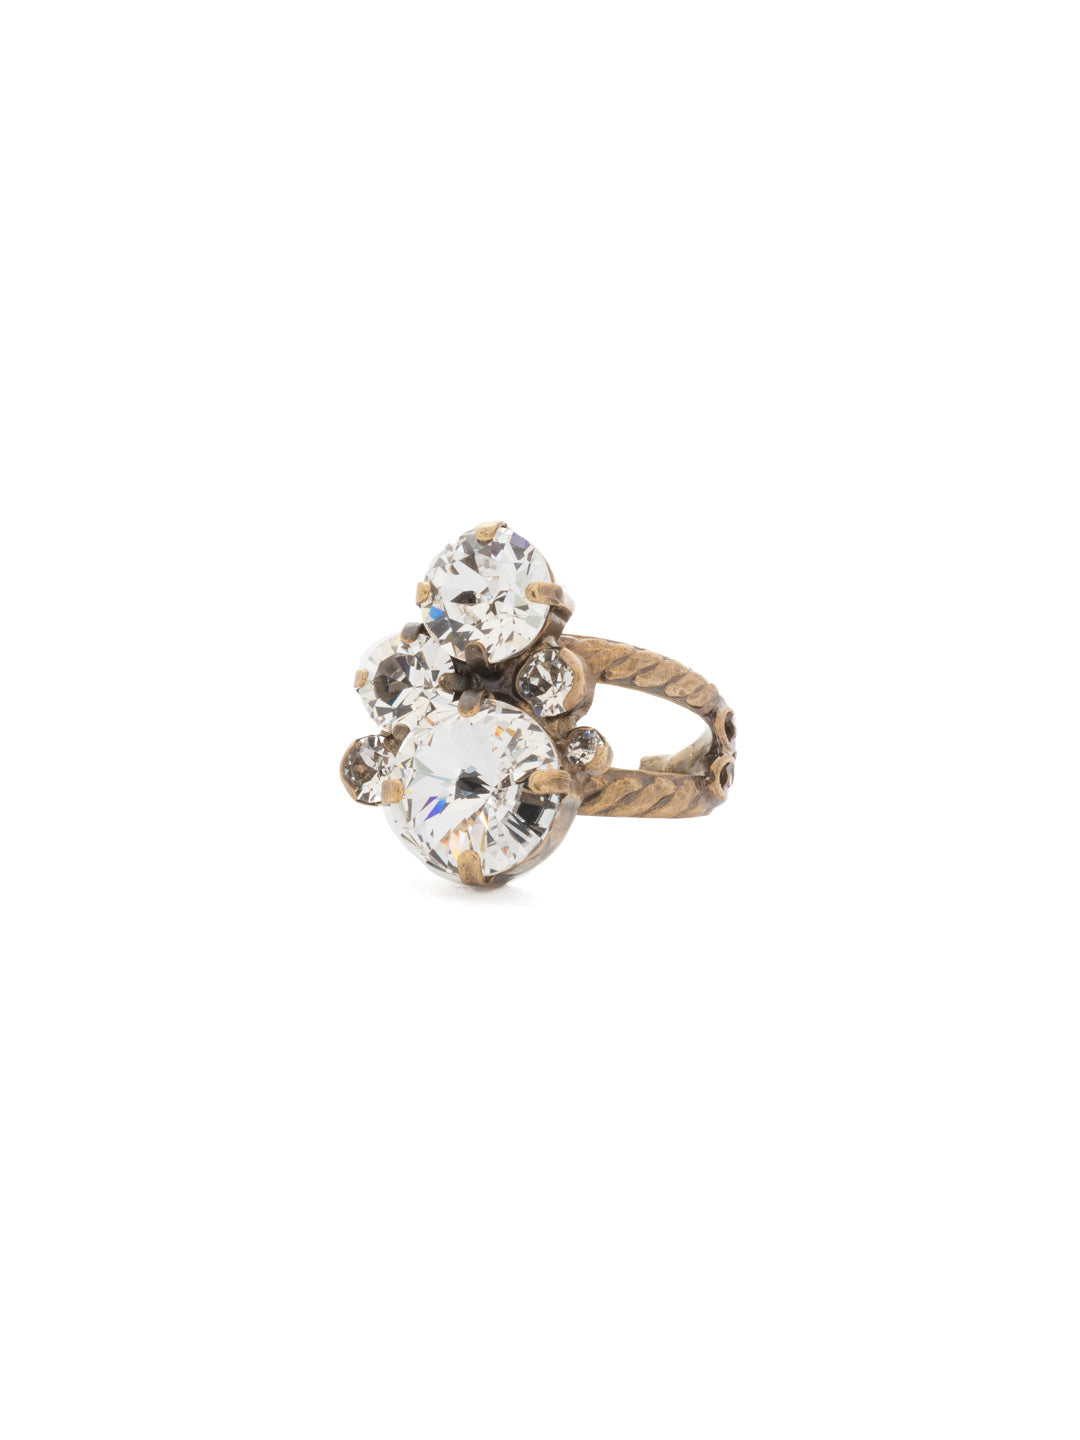 Crystal Assorted Rounds Ring - RDB11AGCRY